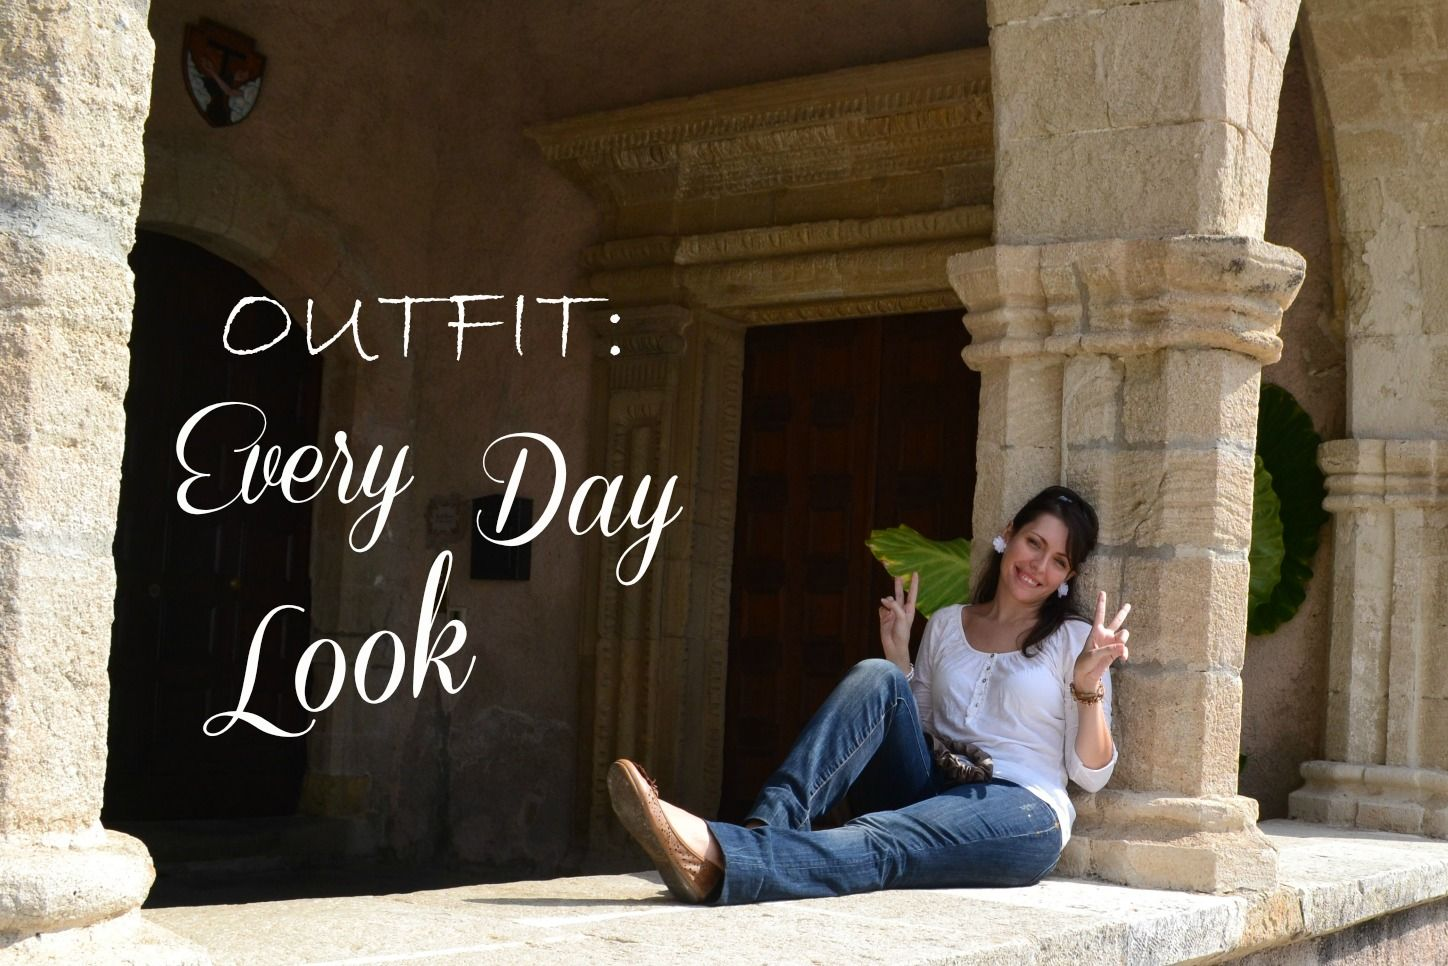 Outfit per tutti i giorni!        http://www.youtube.com/watch?v=IhbS9bFBgV4